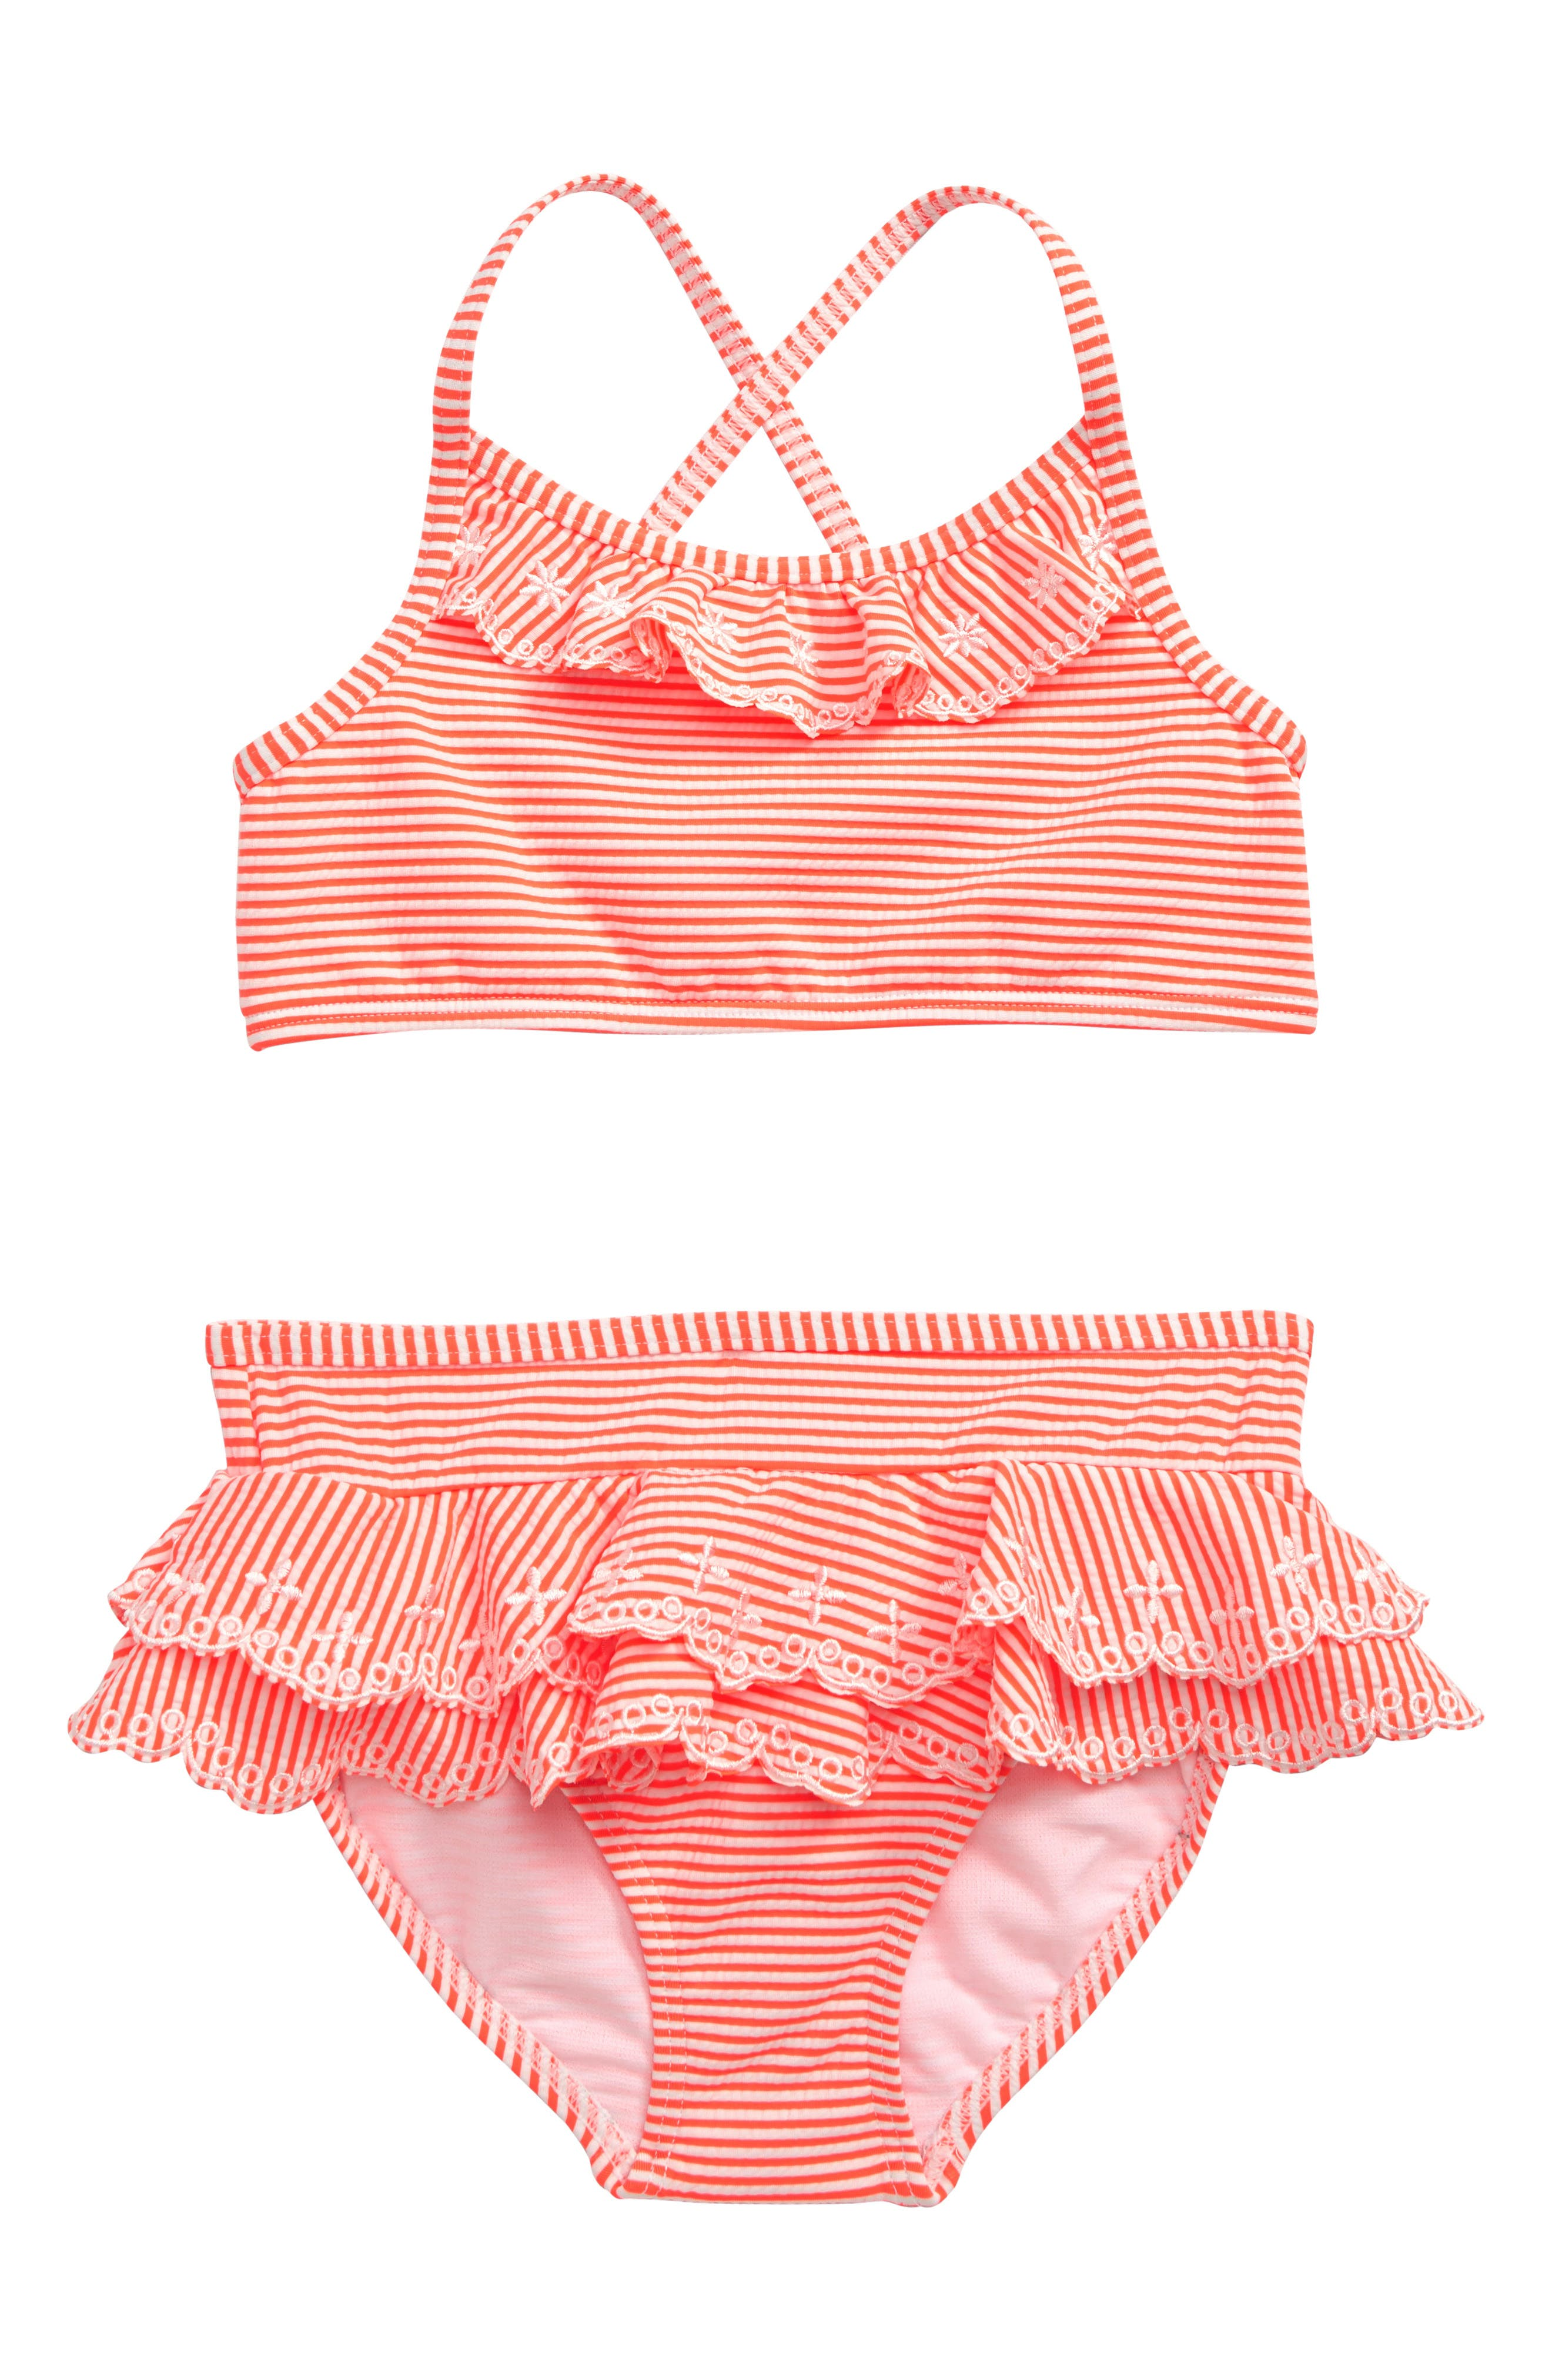 Girls Boden Pretty TwoPiece Swimsuit Size 45Y  Coral